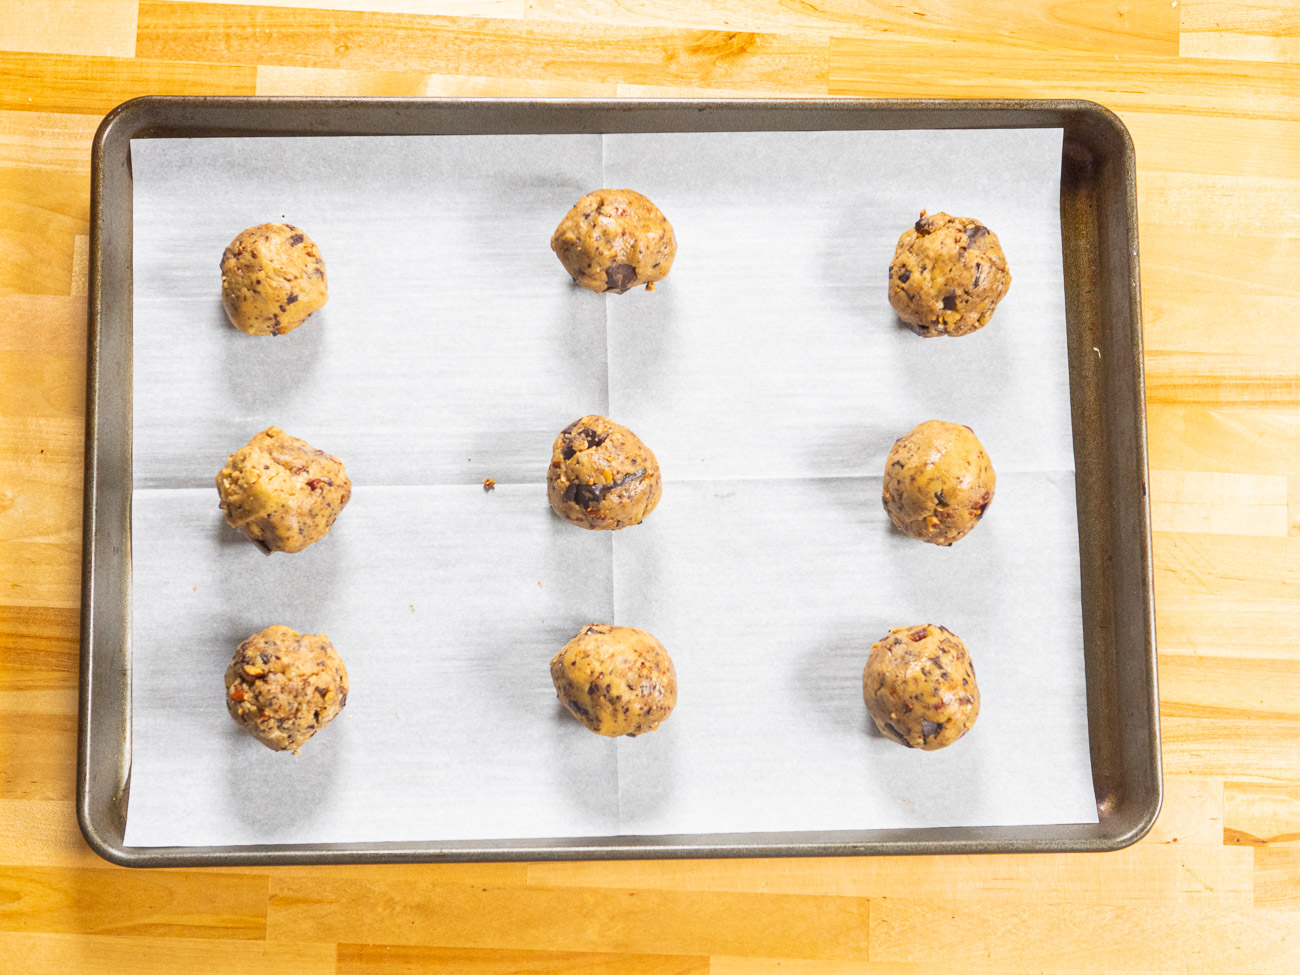 Roll 3 tablespoon-sized scoops of dough between your palms to form a ball (they should be big; almost a 1/4 cup), then place on prepared sheets (make sure to leave enough room in between each cookie for inevitable spreading). Top with a pecan on each cookie ball.